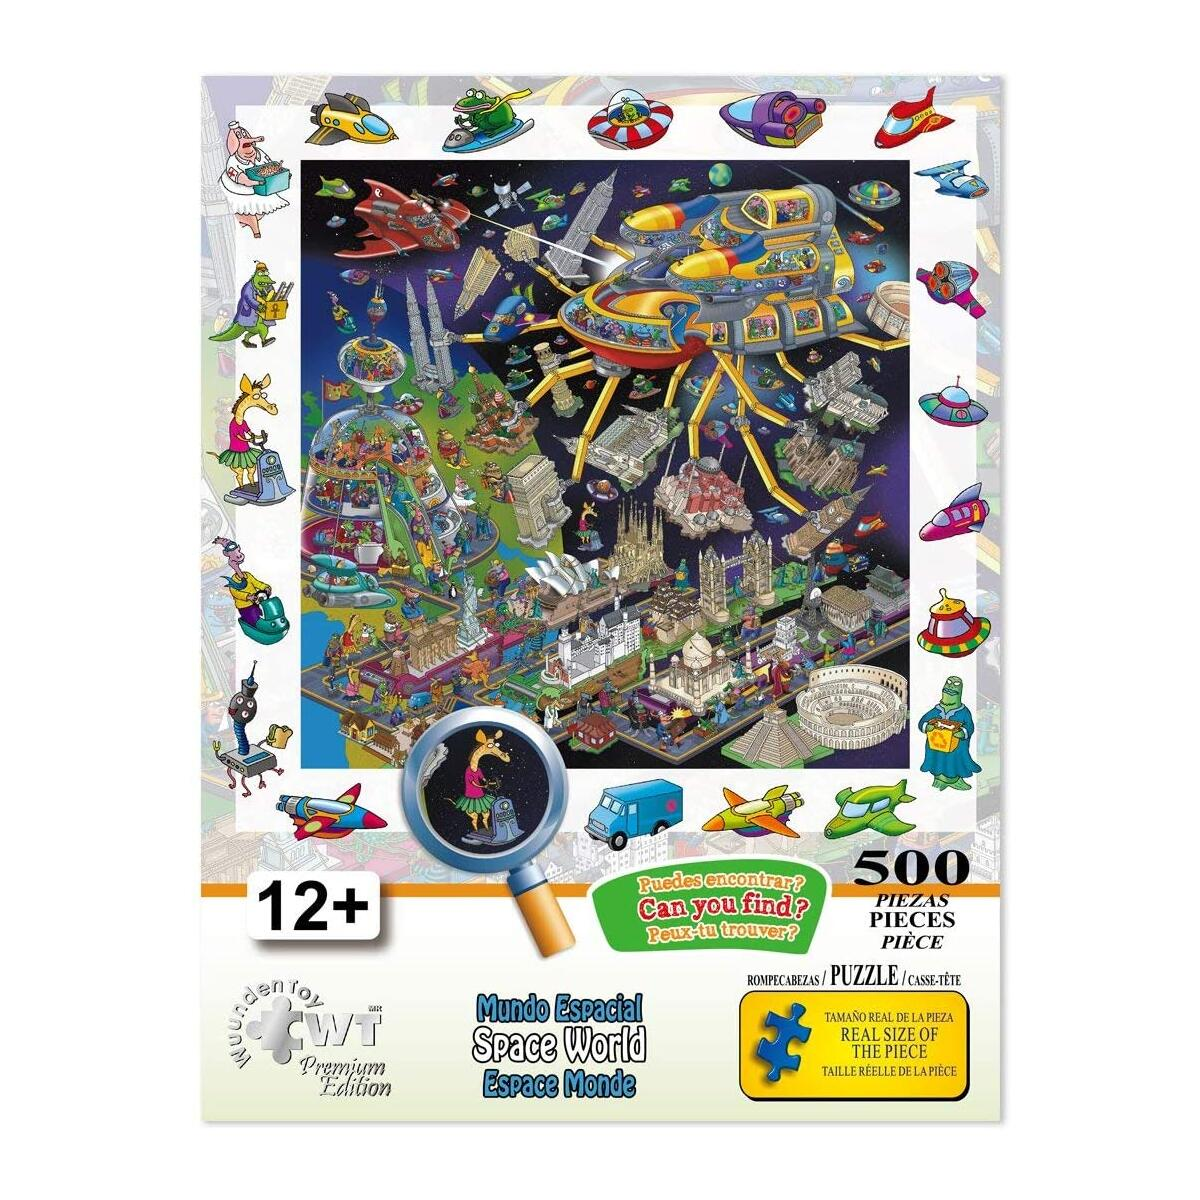 Wuundentoy Premium Edition Jigsaw Puzzles - Search and Find - for Kids, Teens, and Adults - 500 Pieces (Space World)…